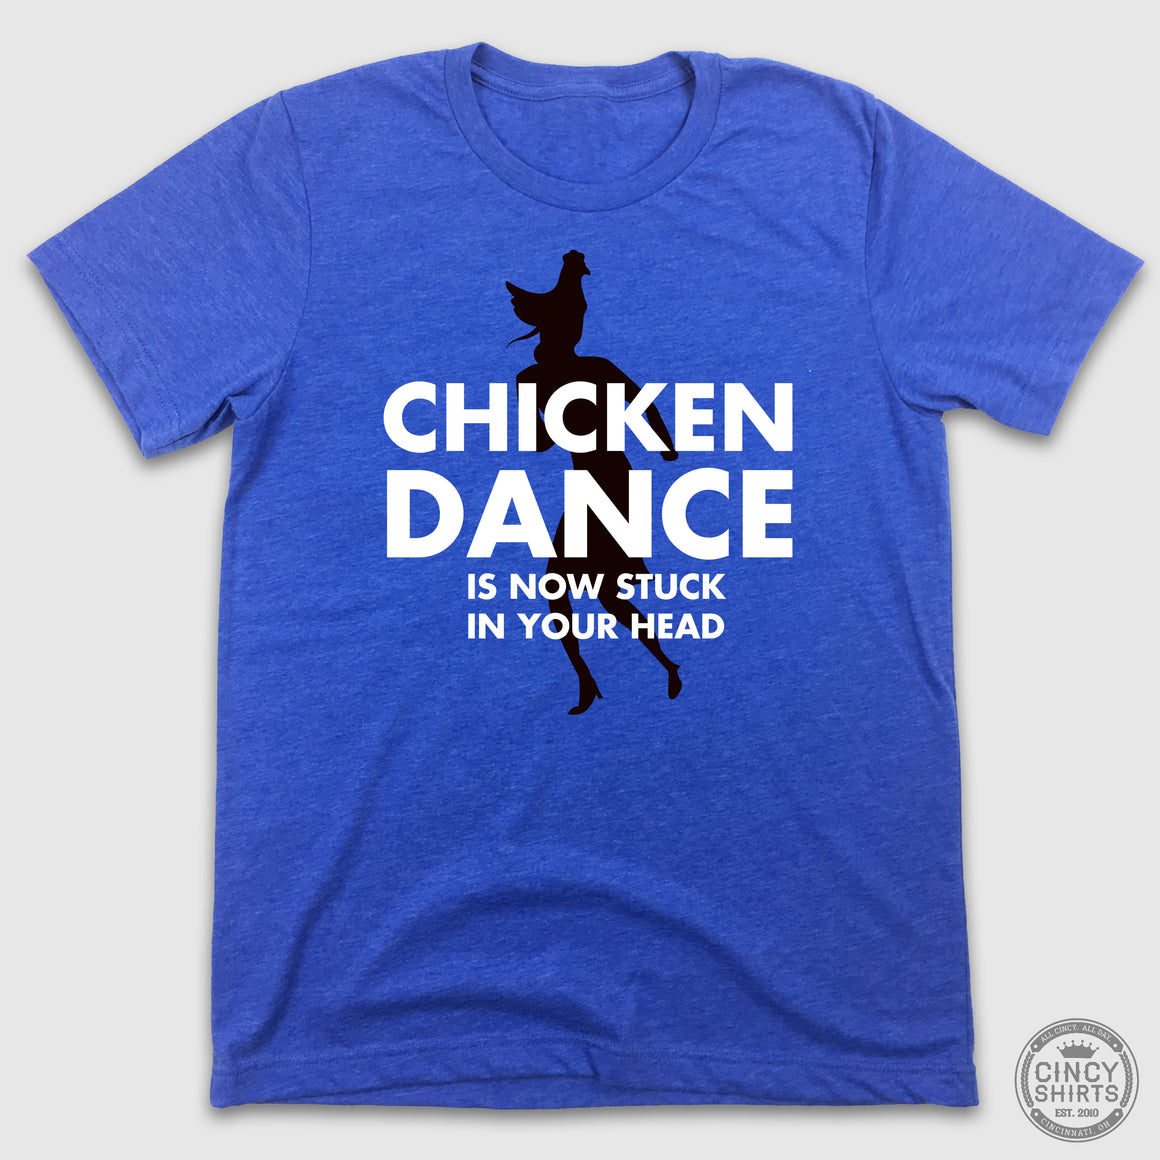 Chicken Dance Is Now In Your Head - Cincy Shirts